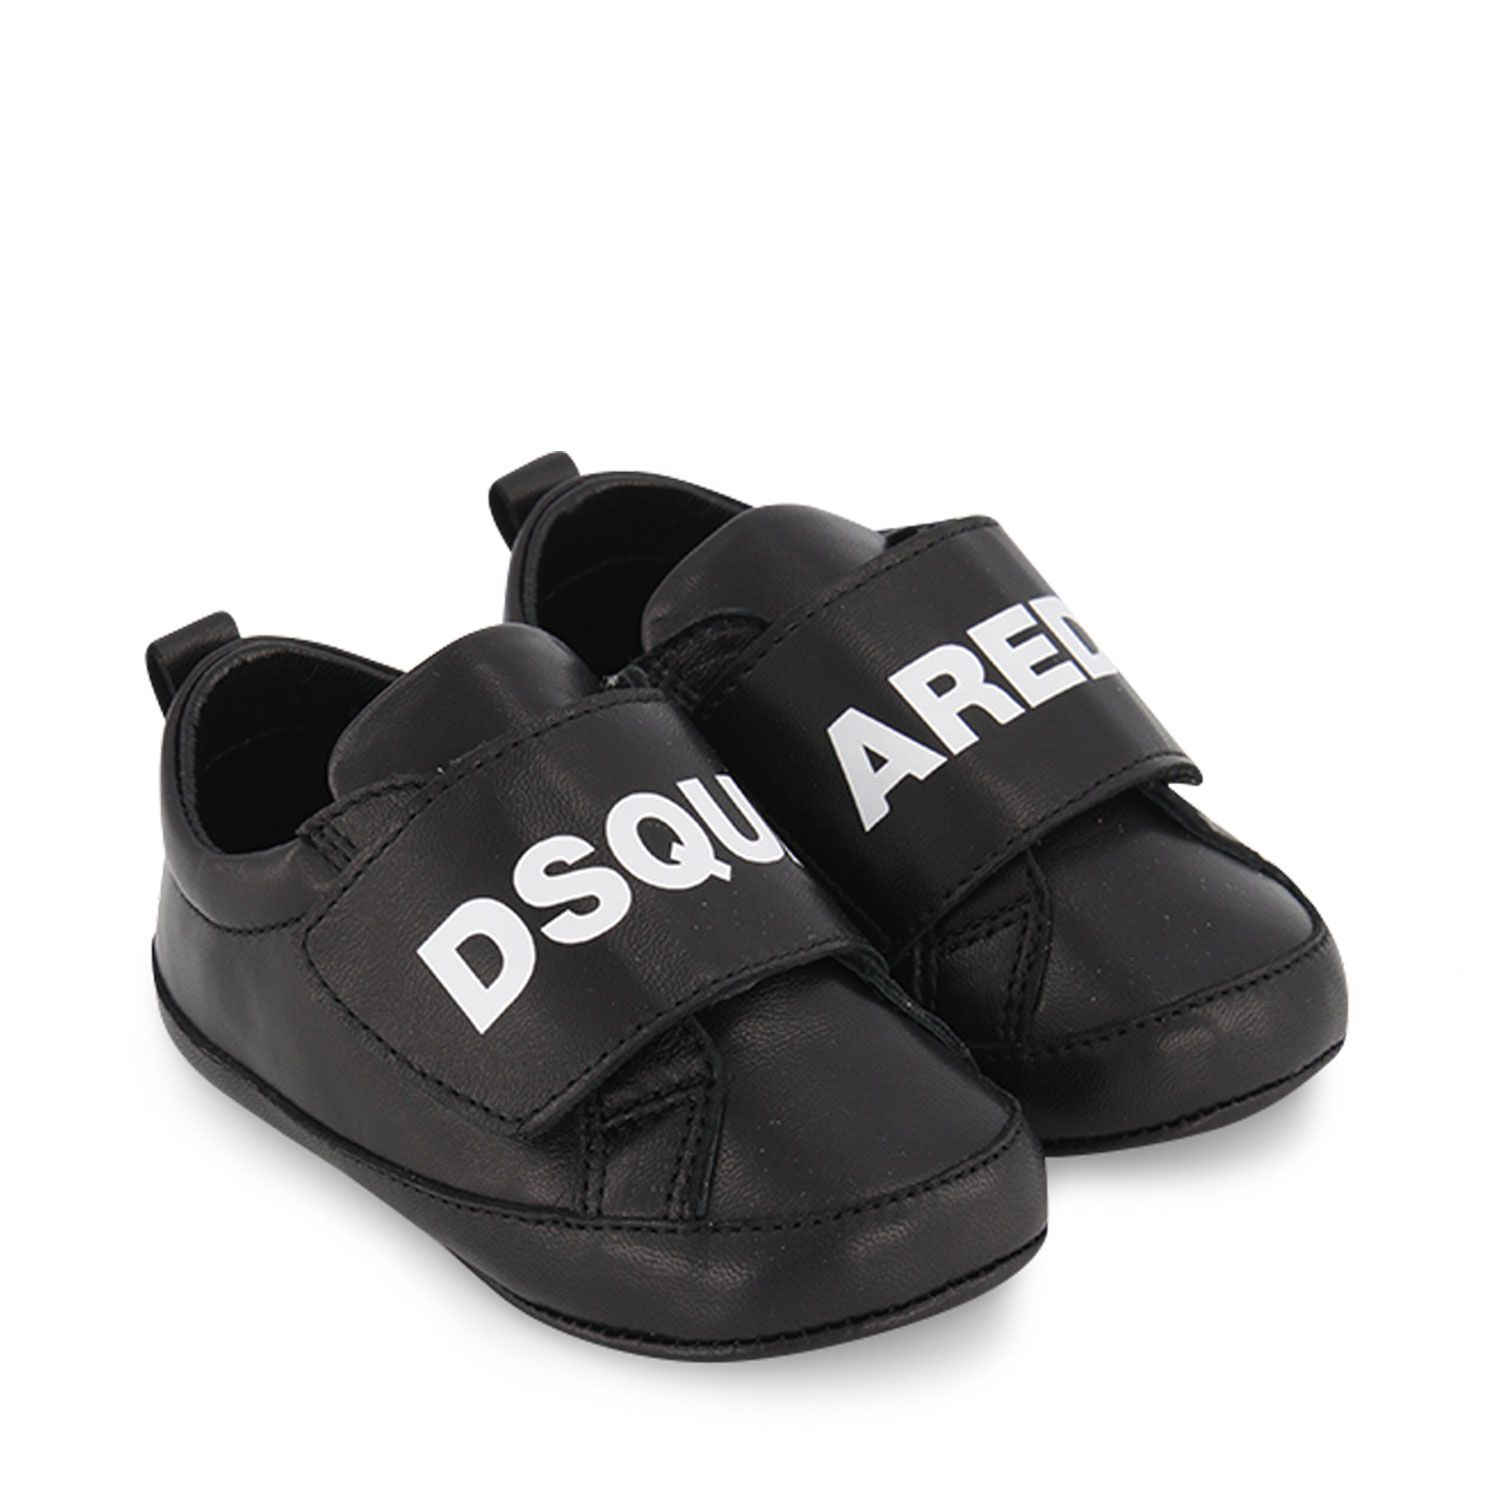 Picture of Dsquared2 68501 baby sneakers black